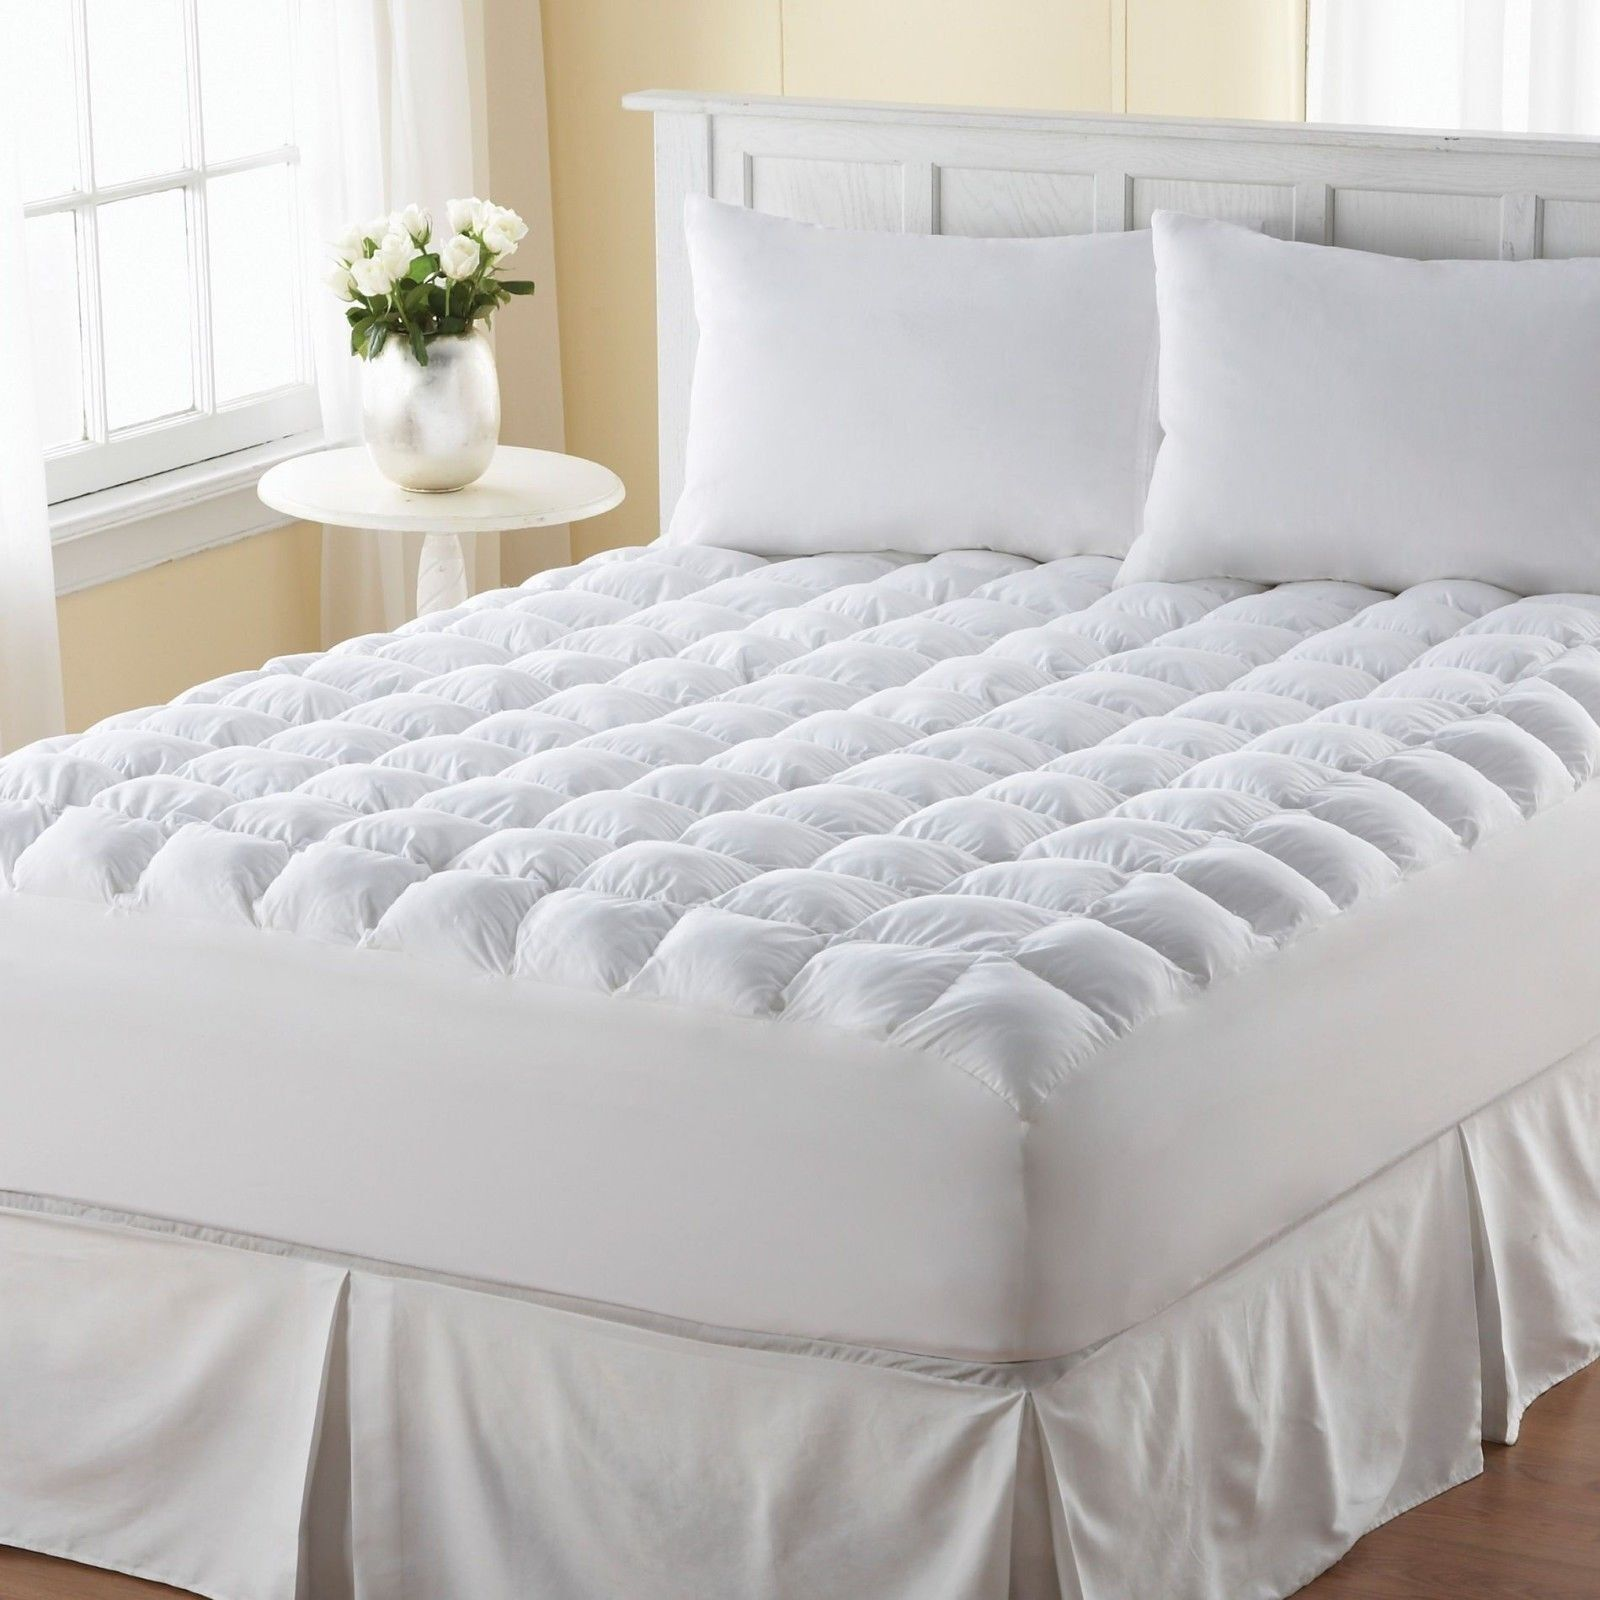 pillow top mattress topper king size pad cover protector cotton bedding bedroom. Black Bedroom Furniture Sets. Home Design Ideas